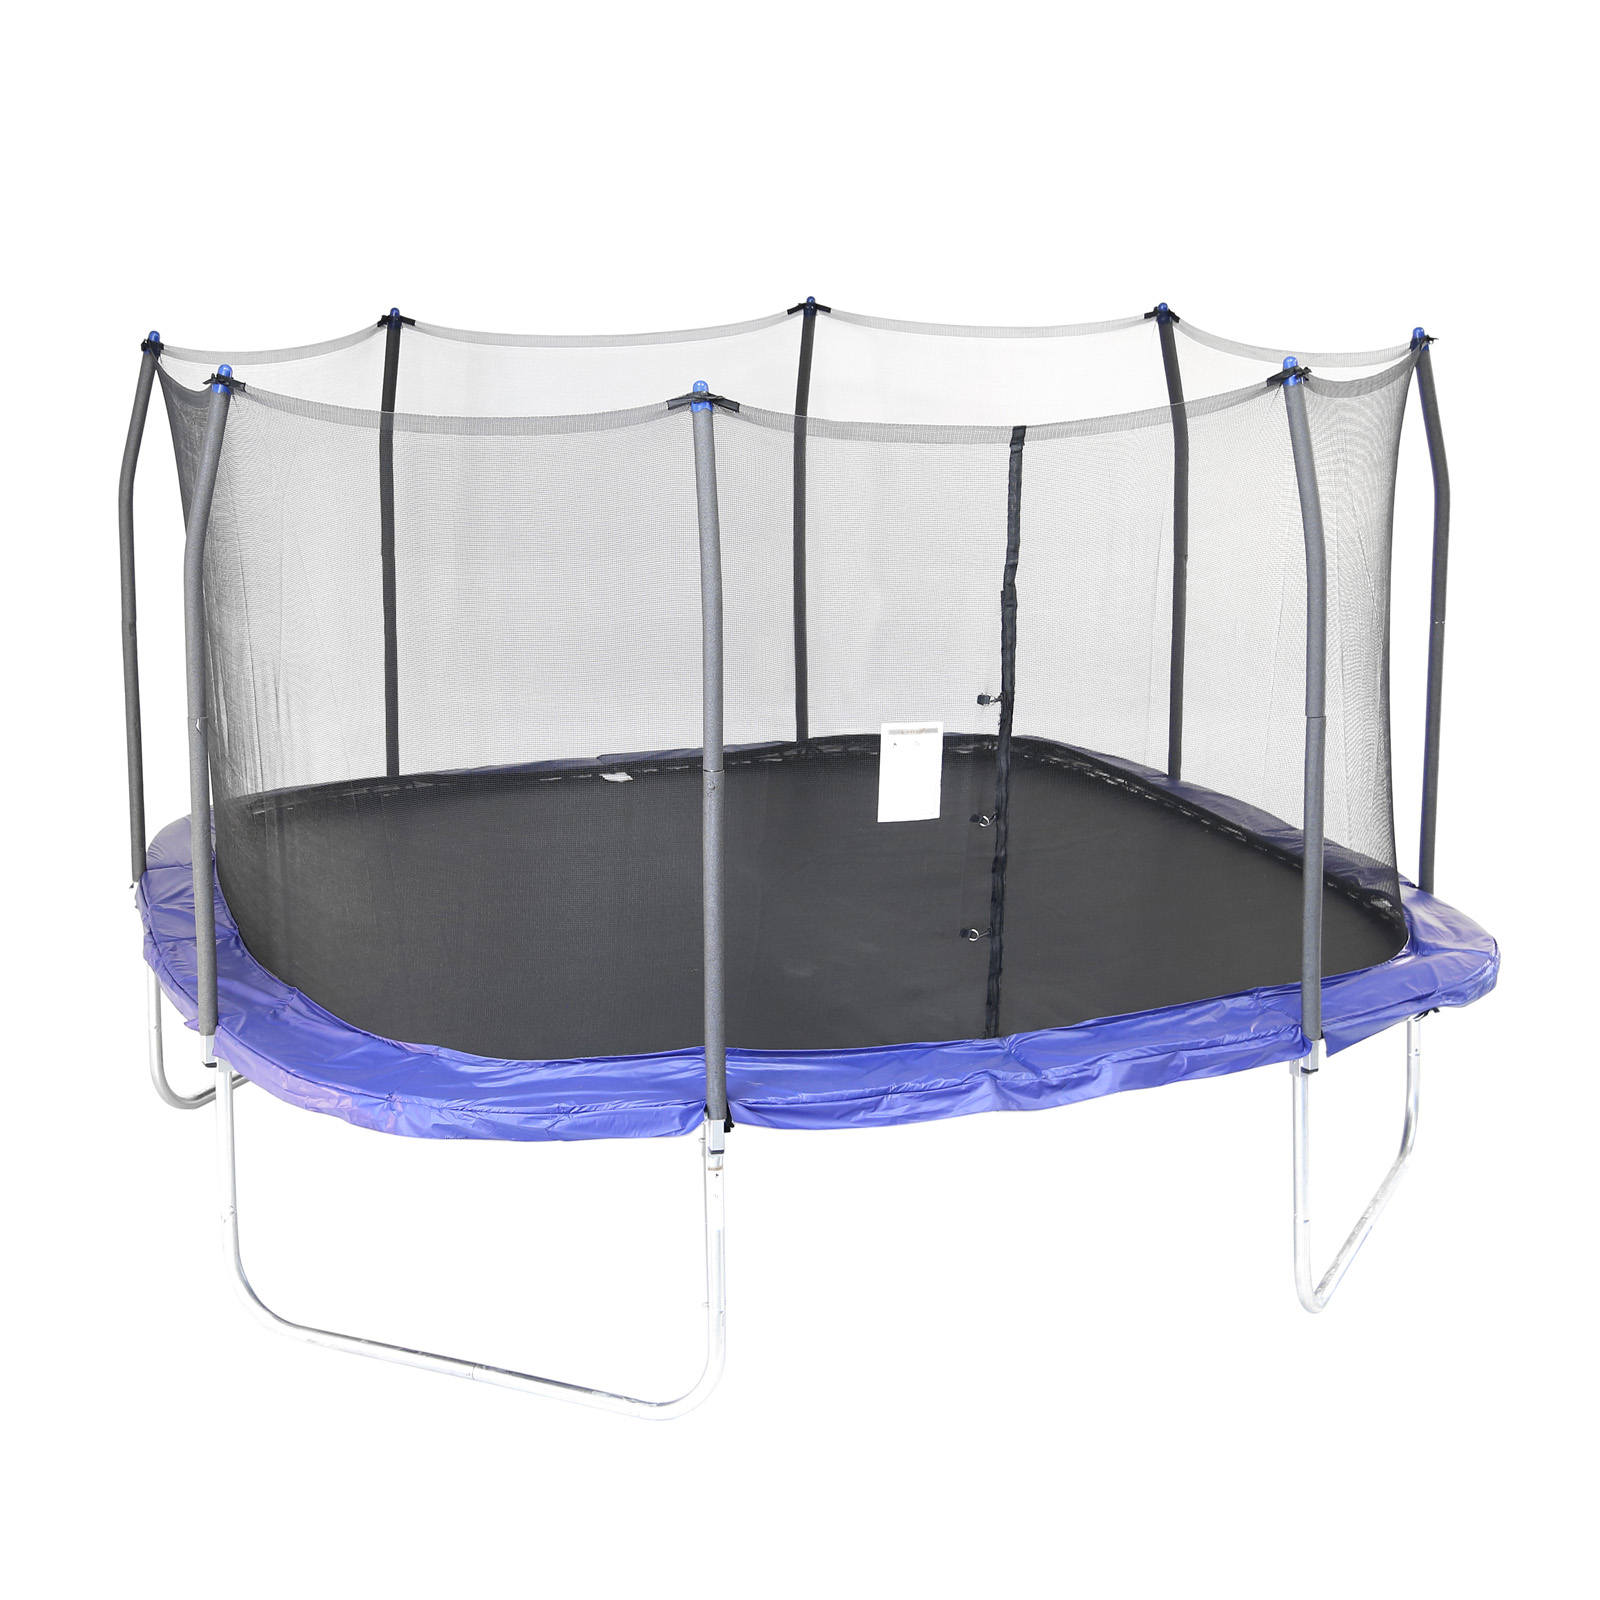 Skywalker 14 Foot Square Trampoline And Enclosure With: Skywalker Trampolines 14 X 14 Ft. Square Trampoline With